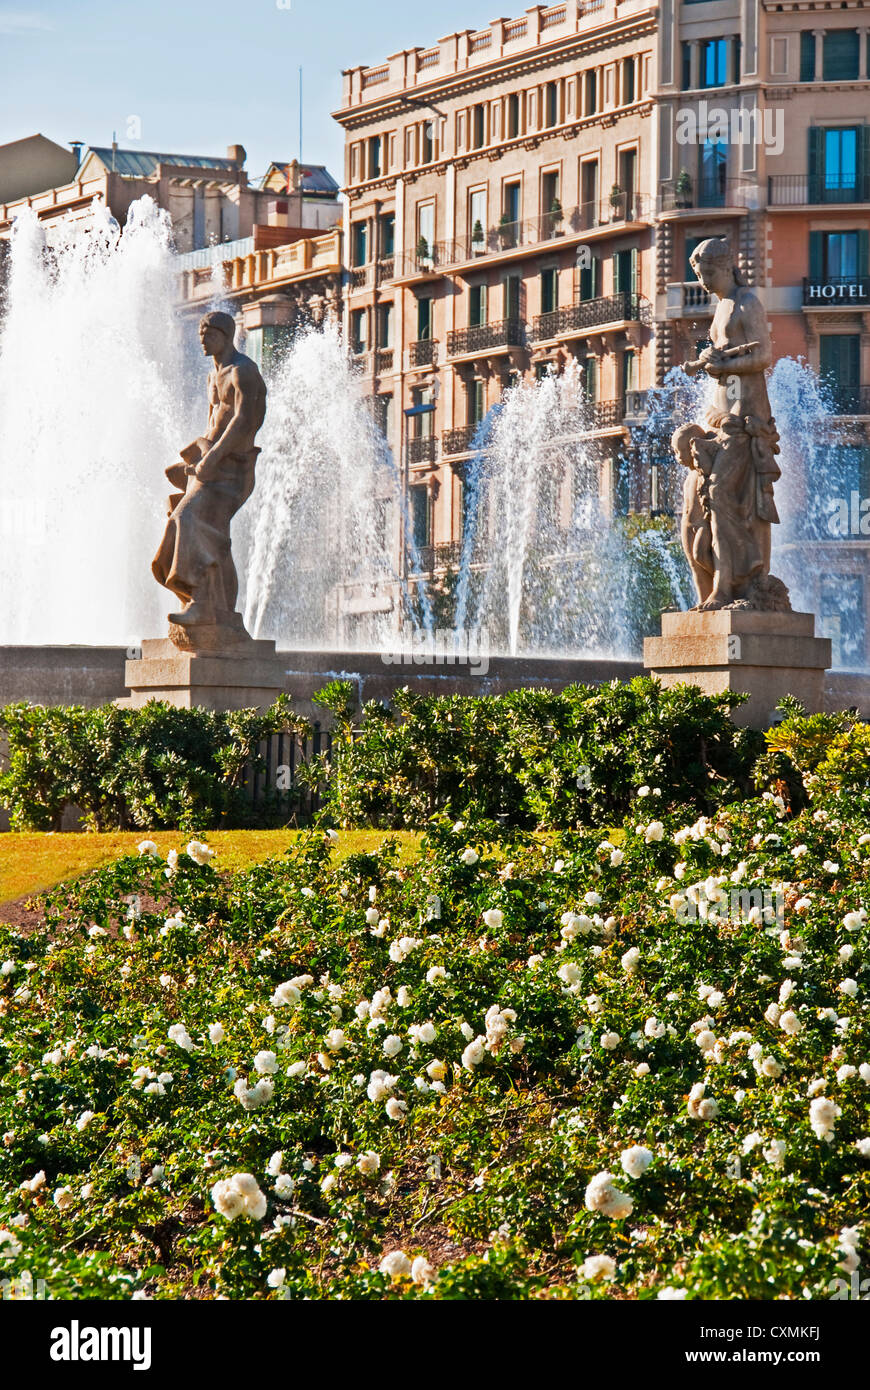 Barcelona's central Placa de Catalunya statues and fountains - Stock Image